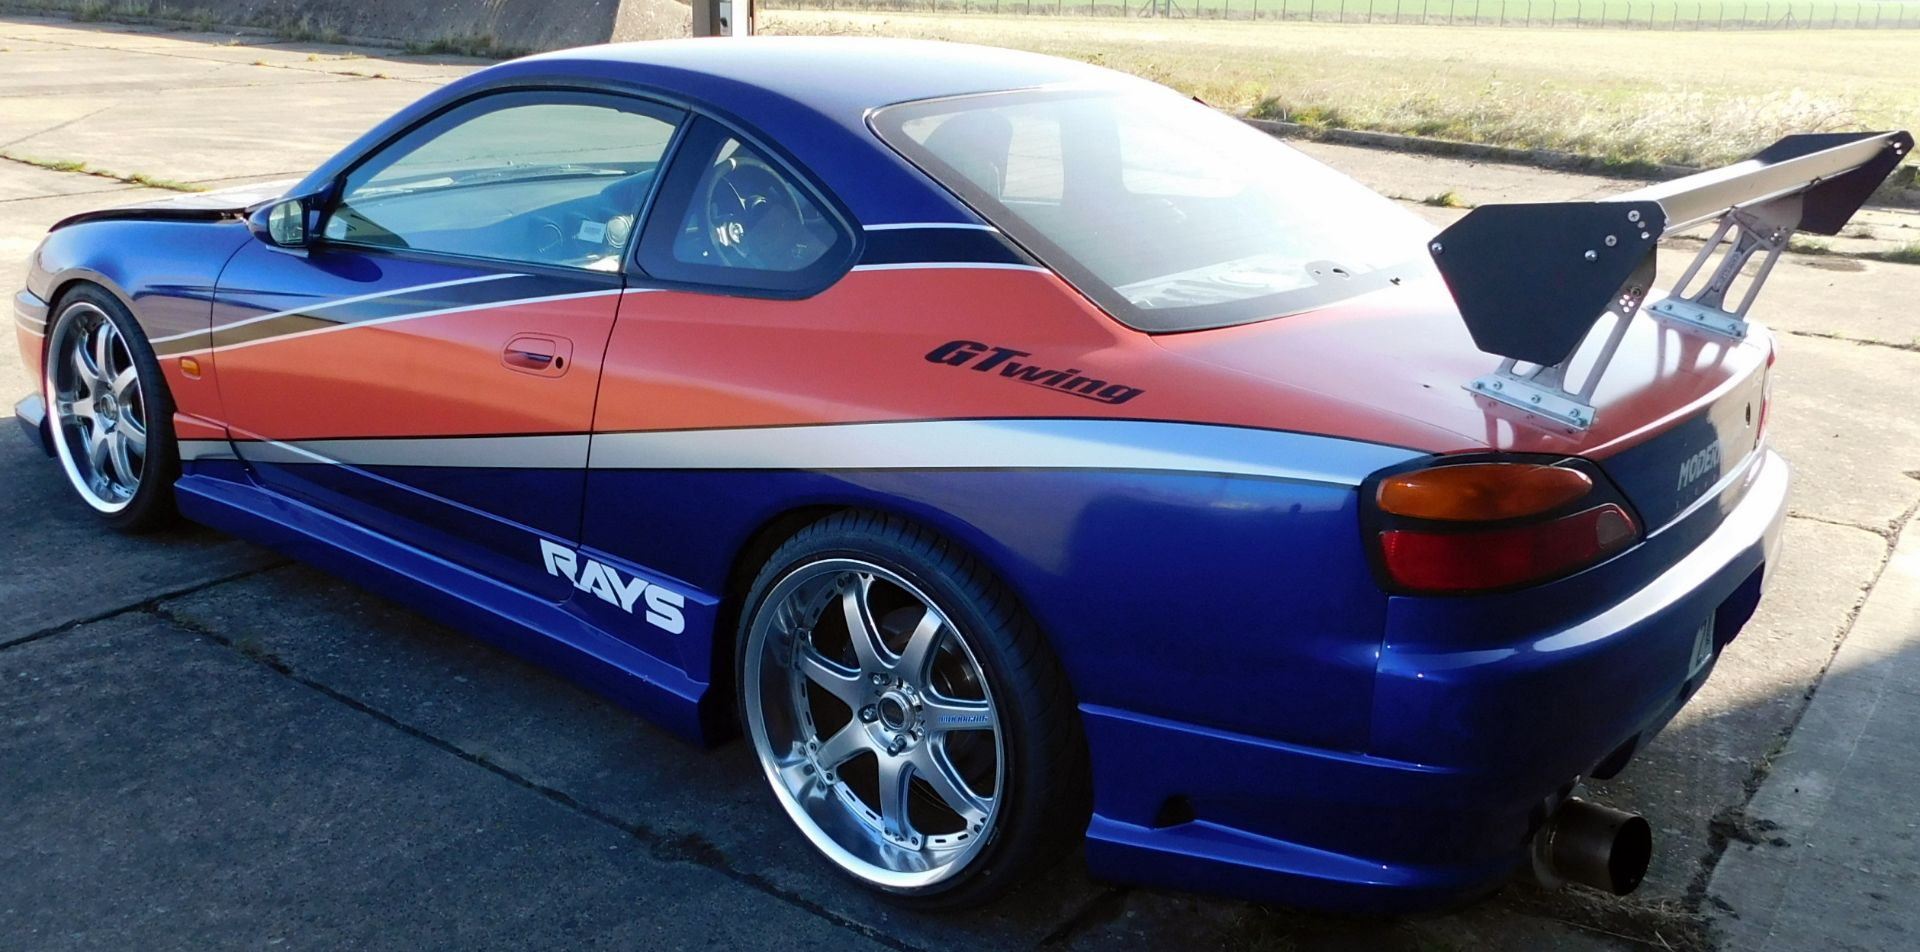 Nissan Silvia S15 2 door Coupe, LS3 V8 6.2 Litre Engine, Quaife 6 Speed Sequential Gearbox, - Image 5 of 12